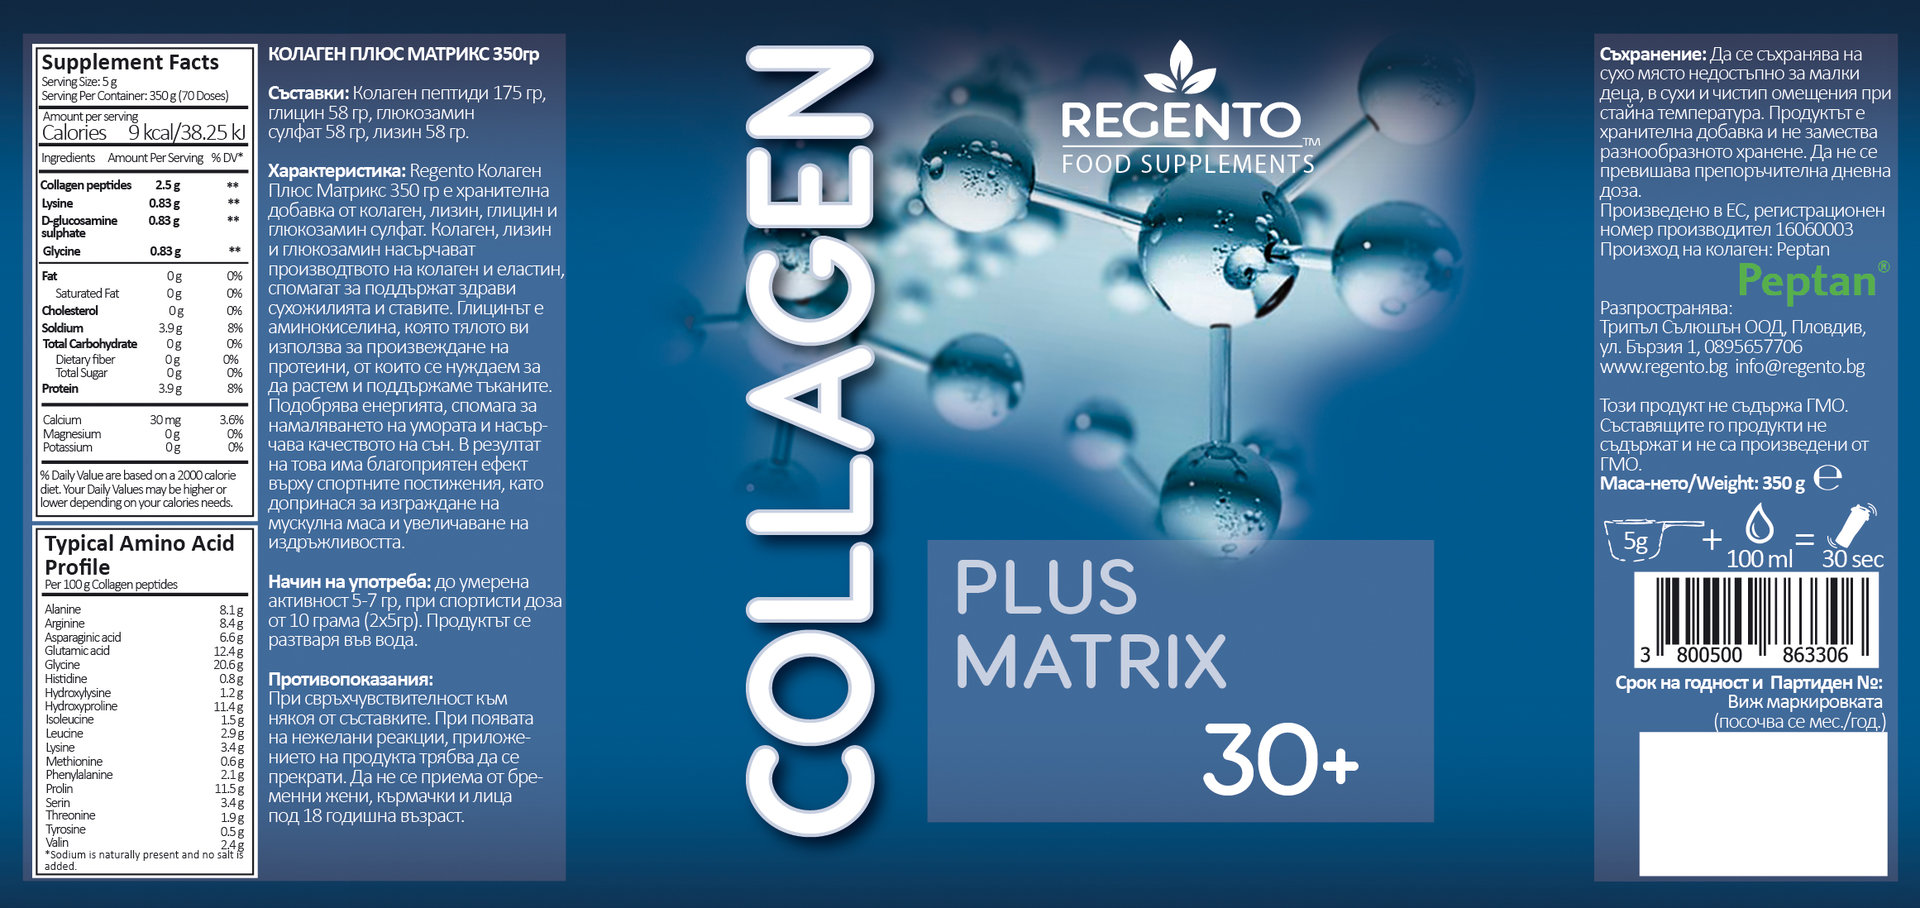 REGENTO COLLAGEN PLUS MATRIX 350g